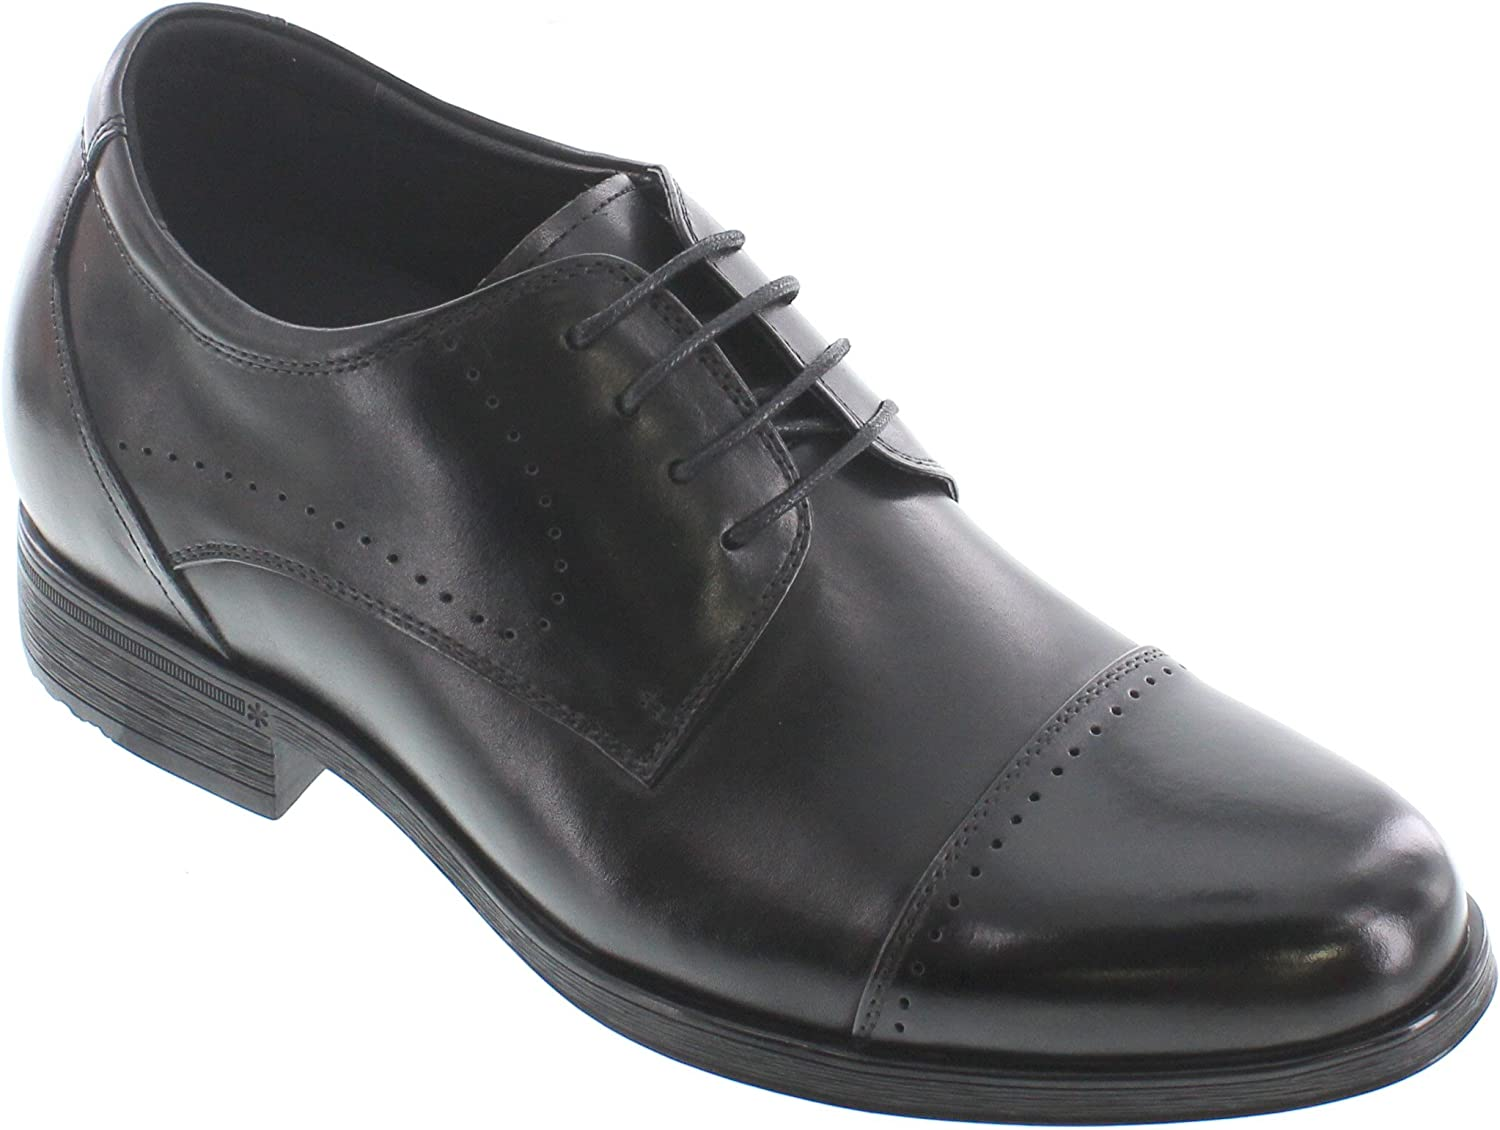 CALTO - G1201-3 Inches Taller - Height Increasing Elevator shoes - Black Leather Lace-up Dress shoes